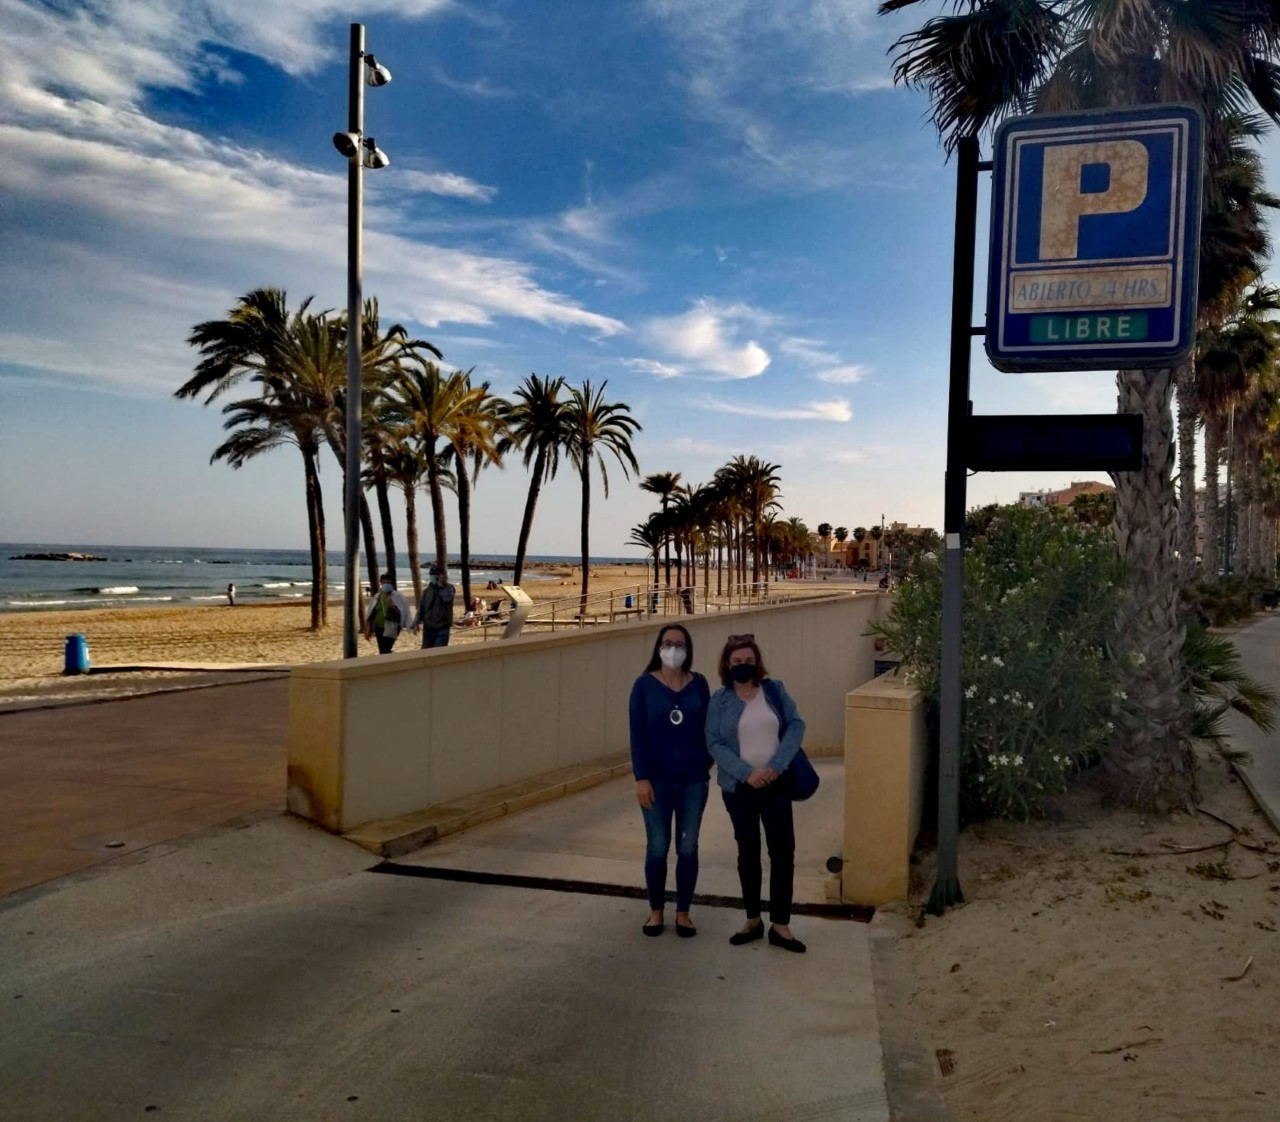 NOTA PP PARKING CHARCO